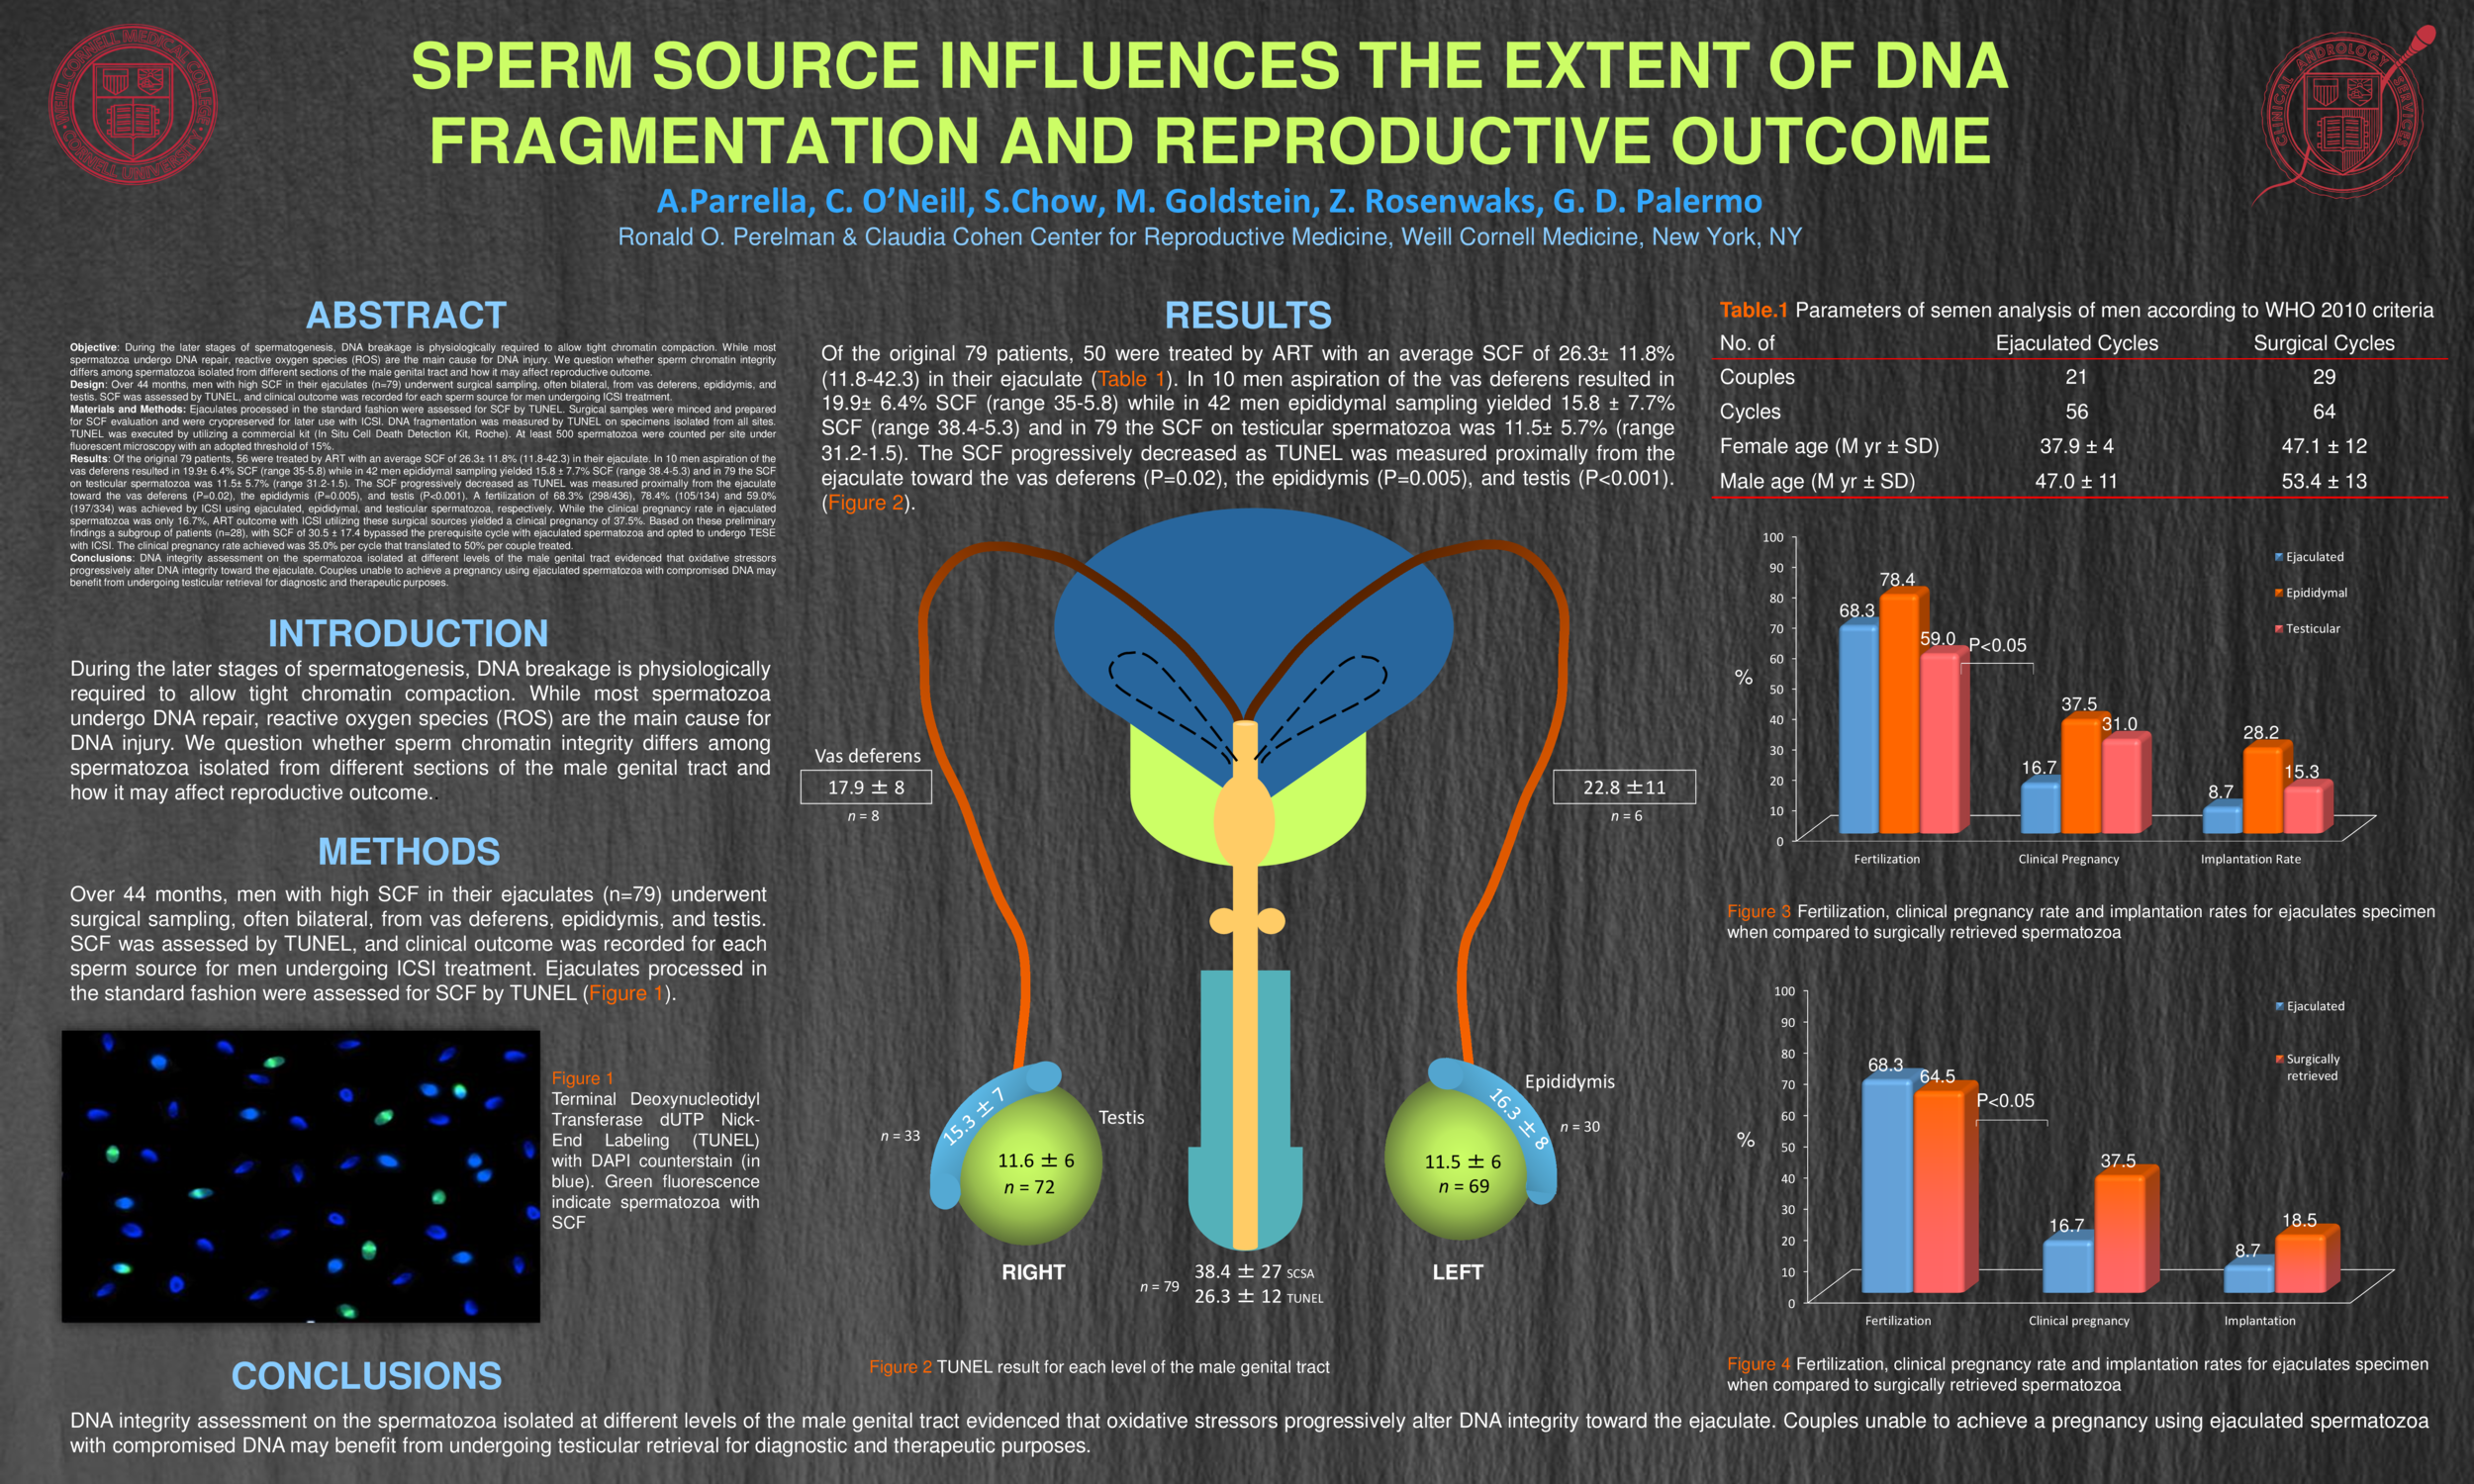 Sperm-Source-Influences-the-Extent-of-DNA-Fragmentation-and-Shapes-Reproductive-Outcome.png